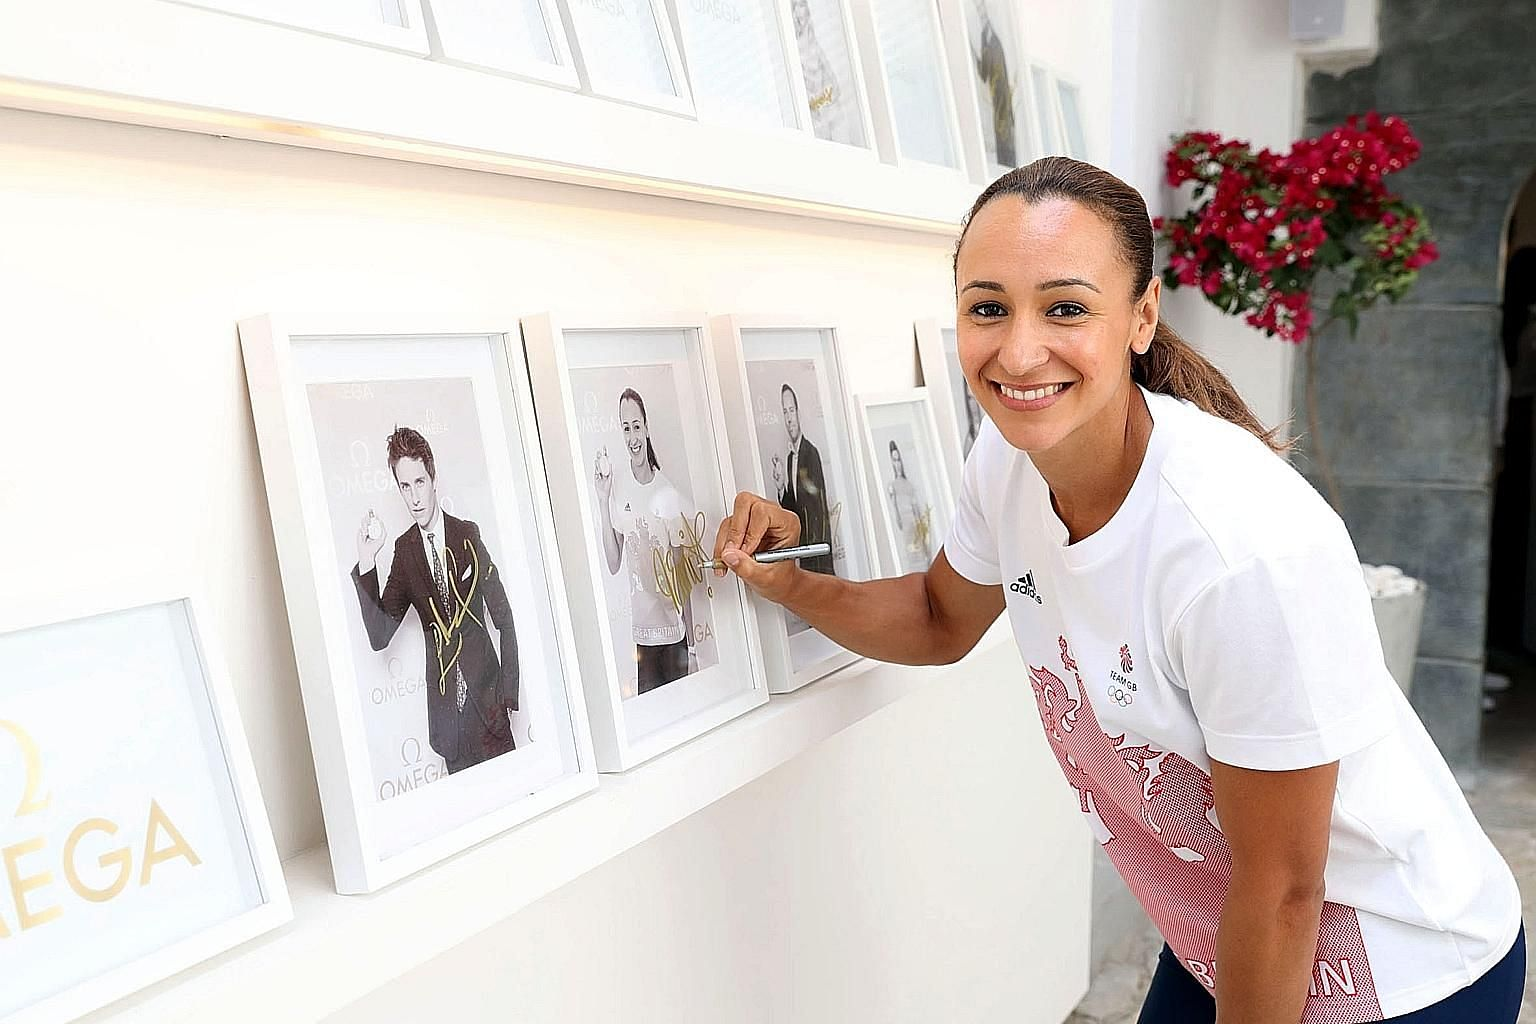 Motherhood will be a major priority after the Rio Games for heptathlete Jessica Ennis-Hill. who has a two-year-old son. The Omega brand ambassador won a silver medal in Rio to go with the gold medal she clinched at the London Olympics.